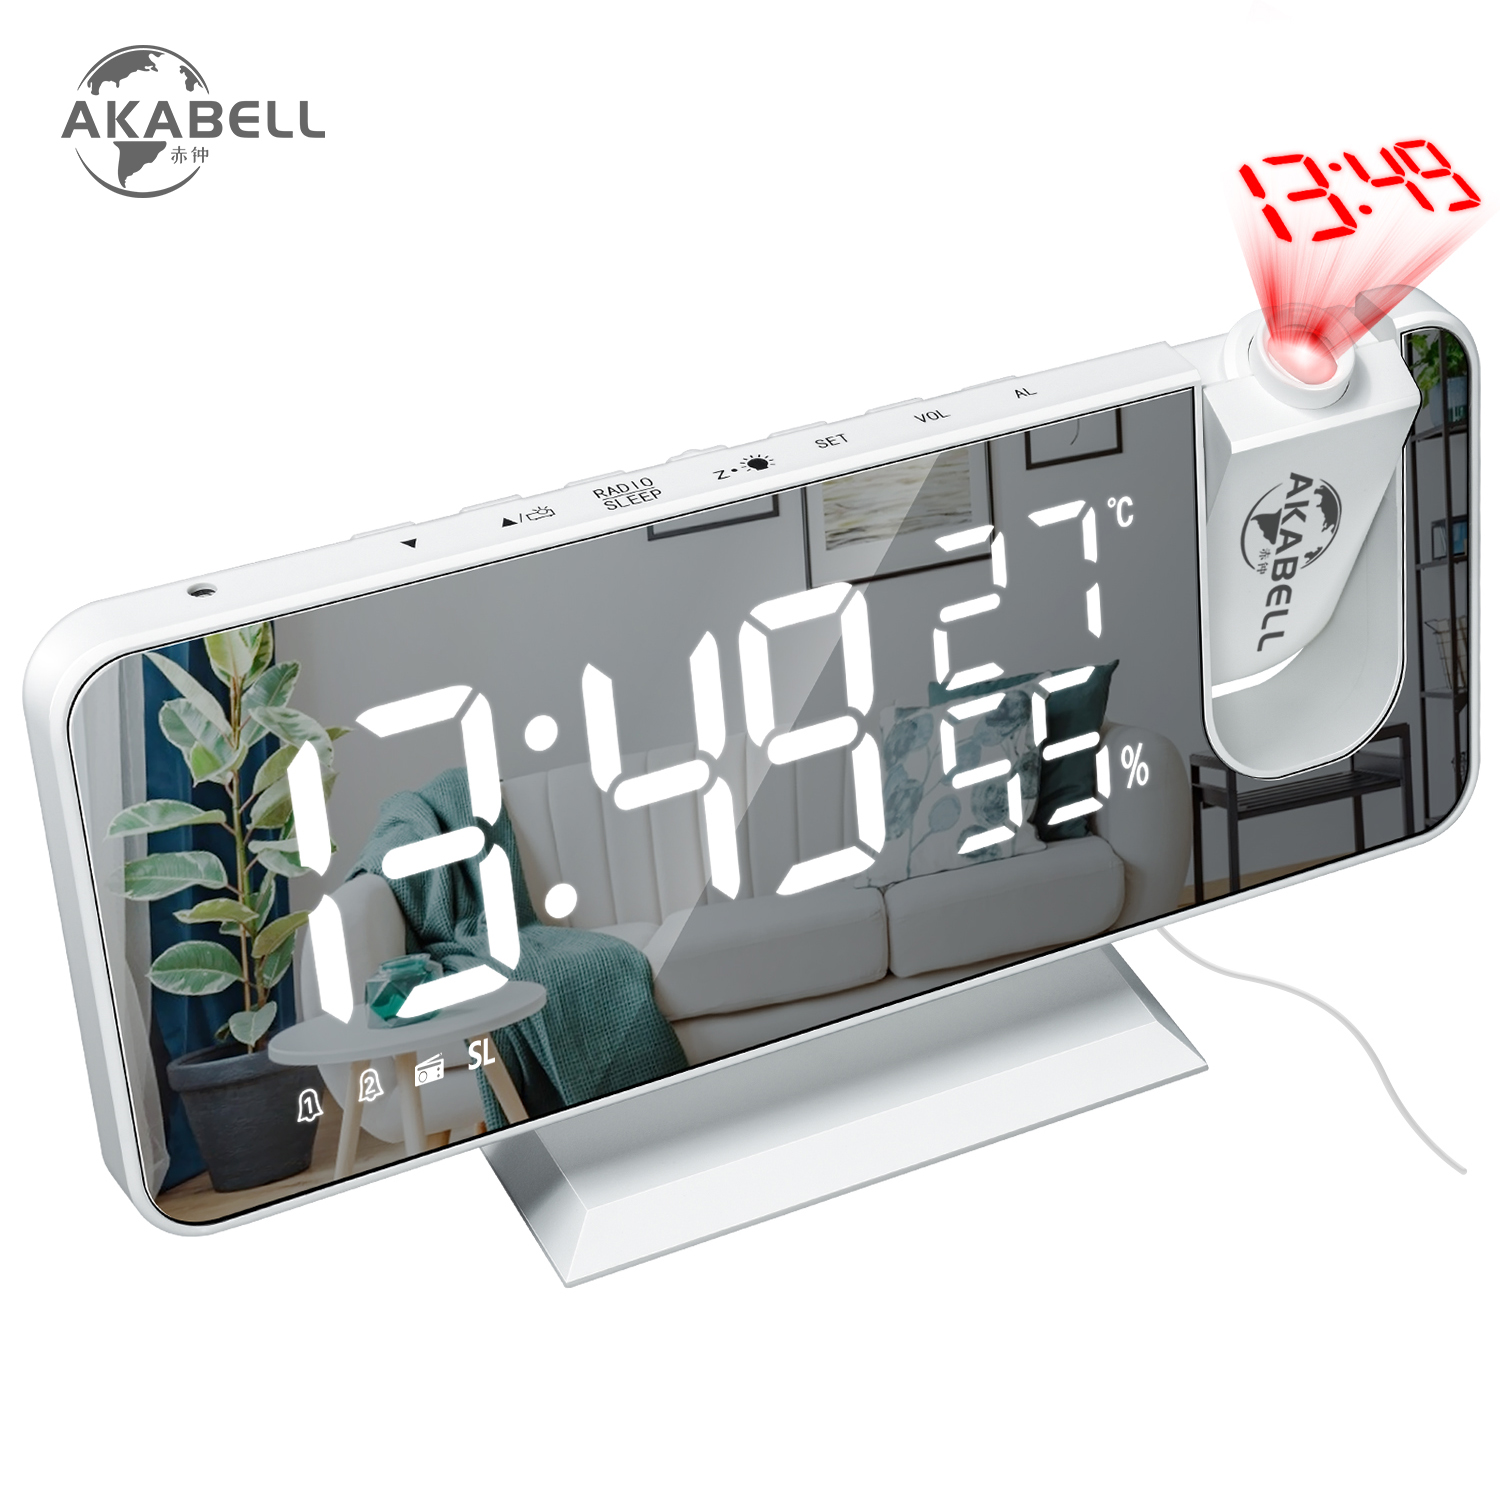 AKABELL 3D Projection Alarm Clock Radio Digital Clock with USB Charger 18CM Large Mirror LED Display Alarm Clock Auto Dimmer